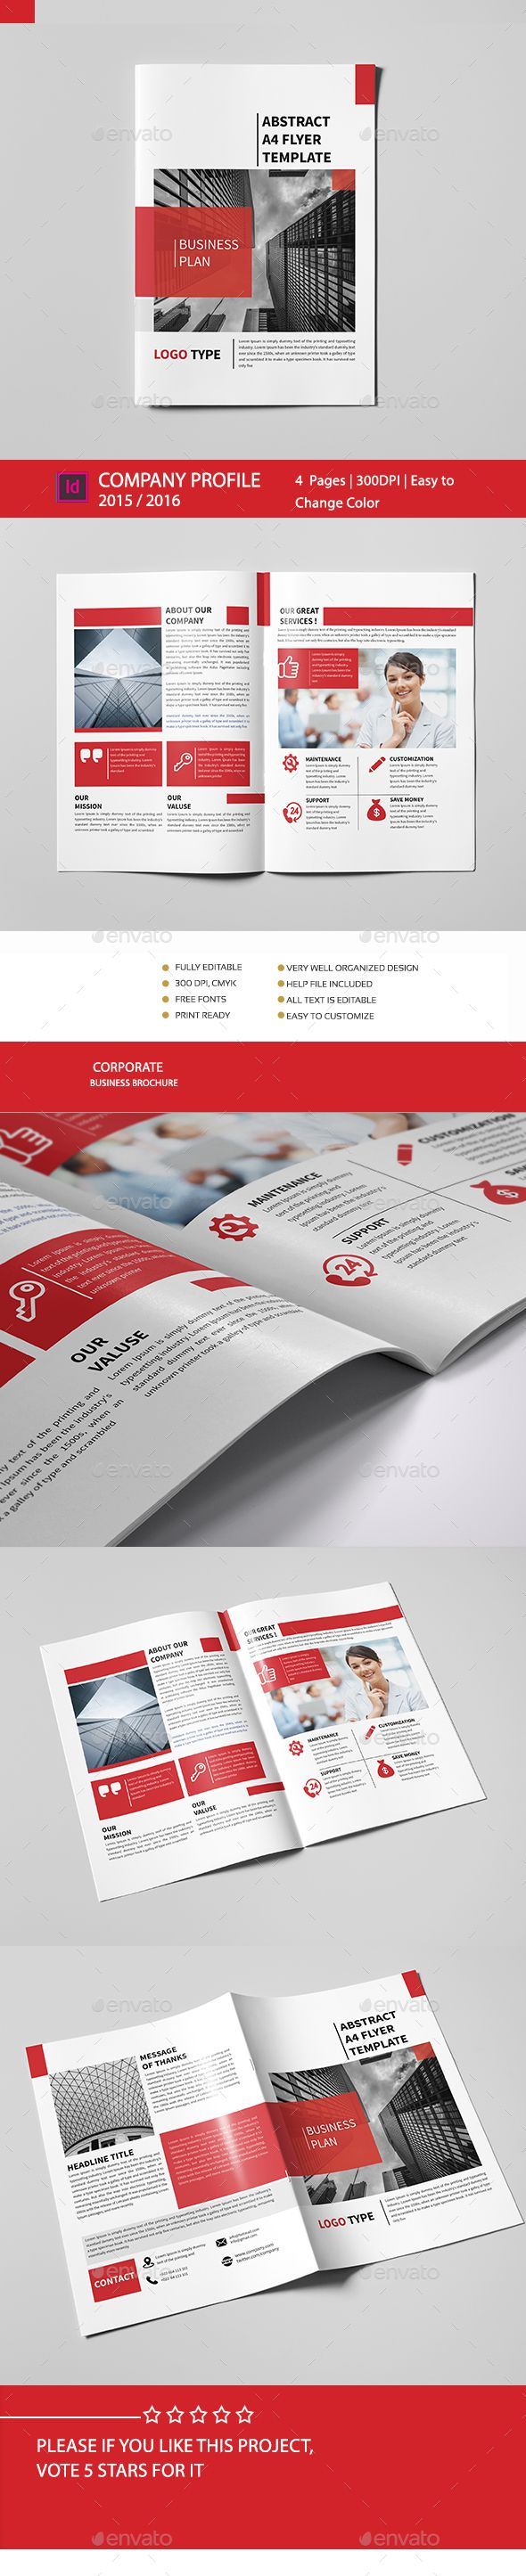 Bi-Fold Brochure  #professional #psd brochure #simple • Available here → http://graphicriver.net/item/bifold-brochure/15805661?ref=pxcr